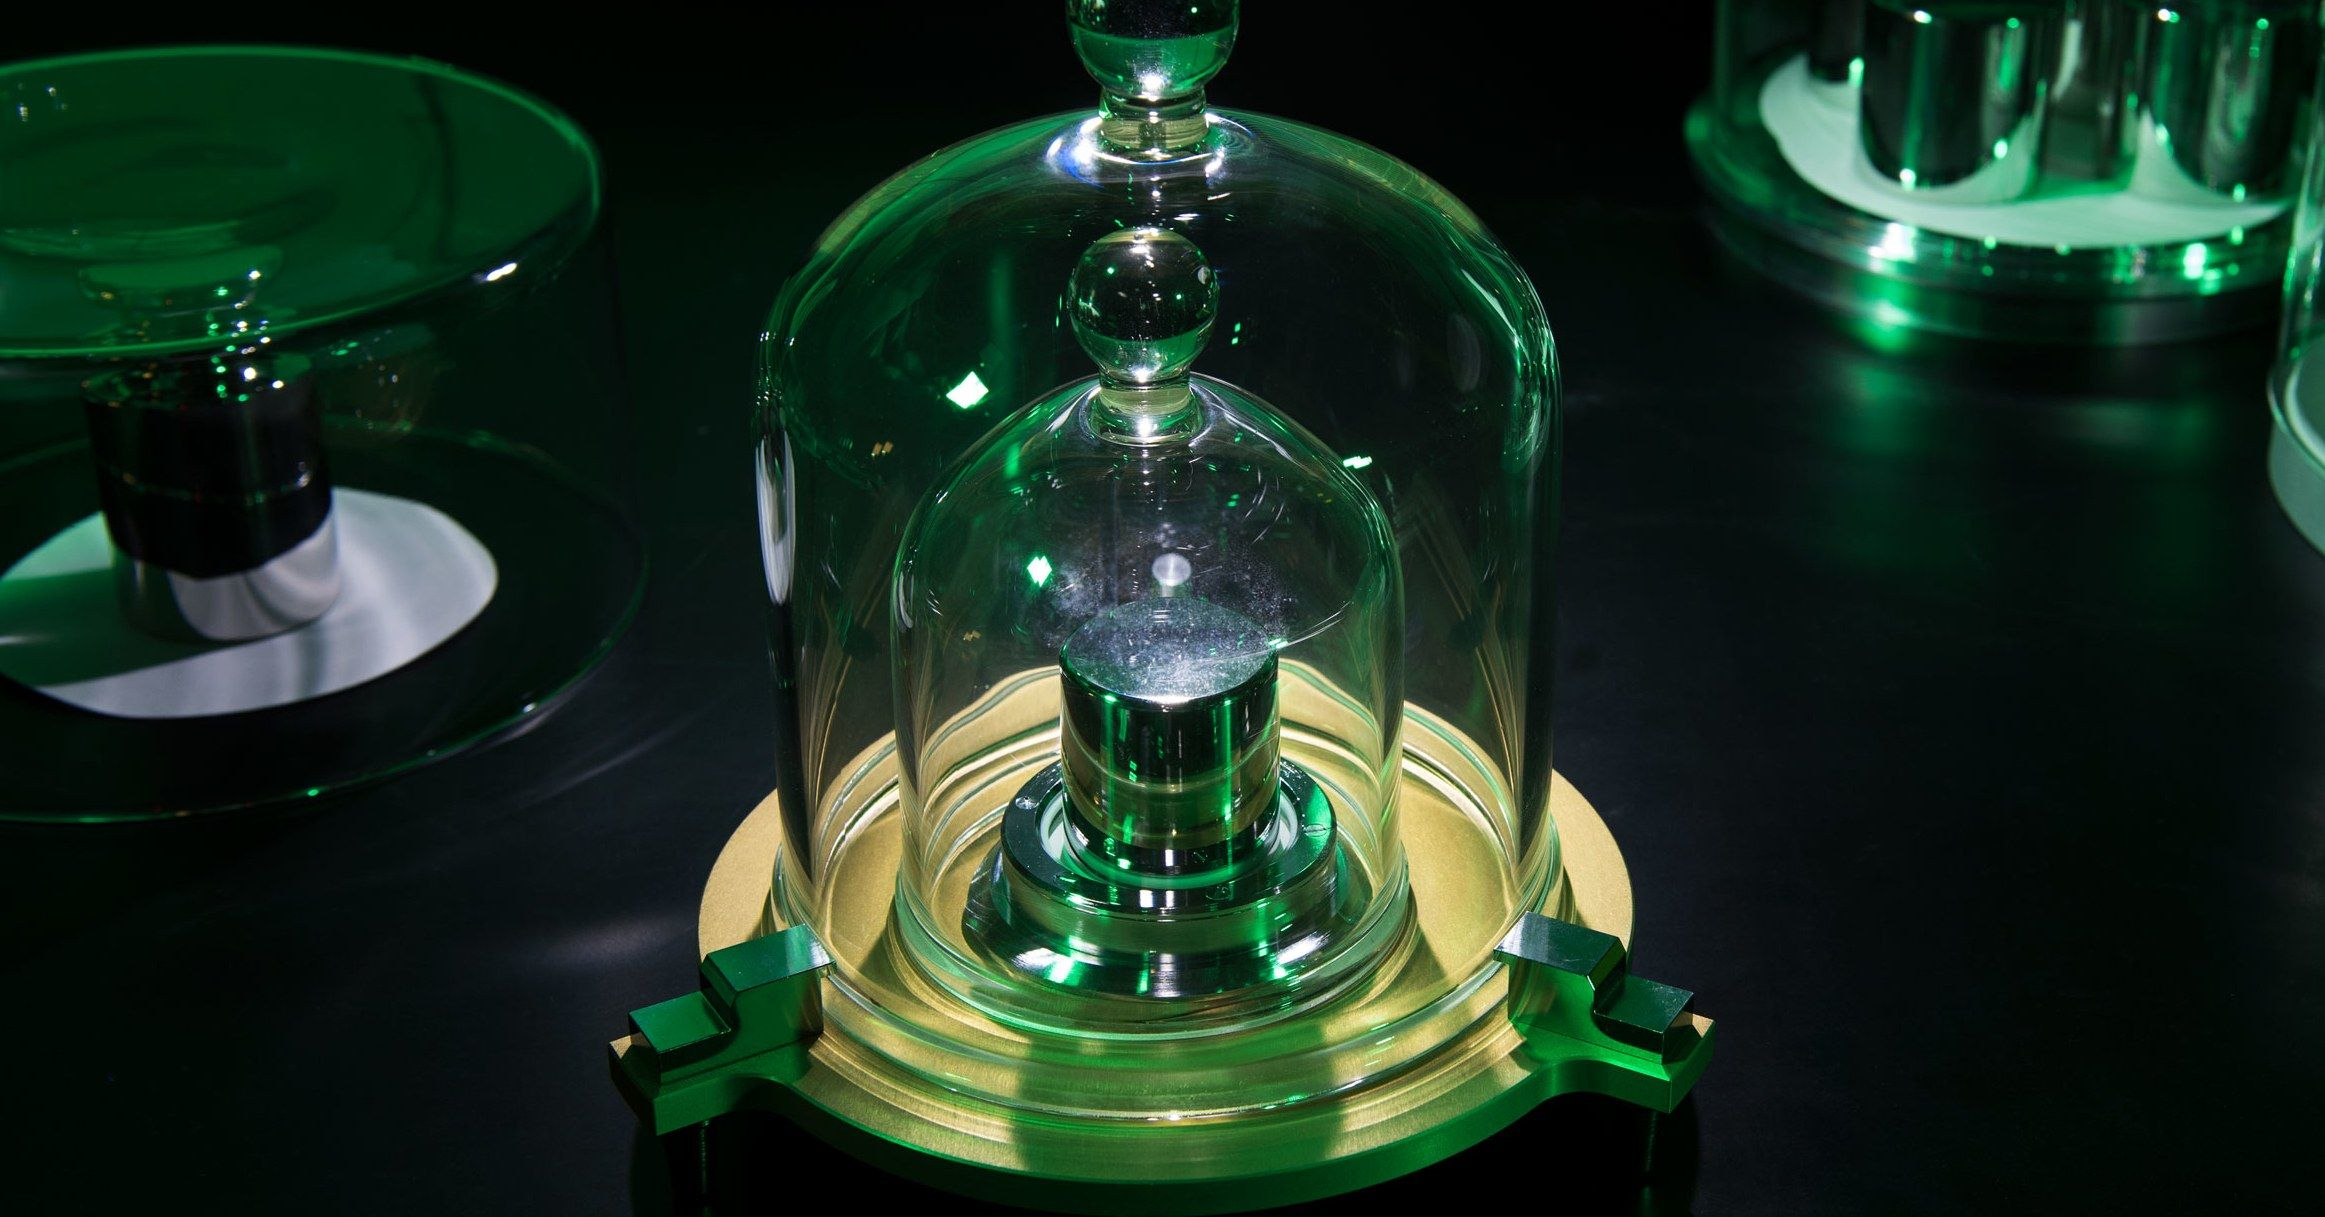 Kilogram Redefined The Metric System Overhaul Is Complete